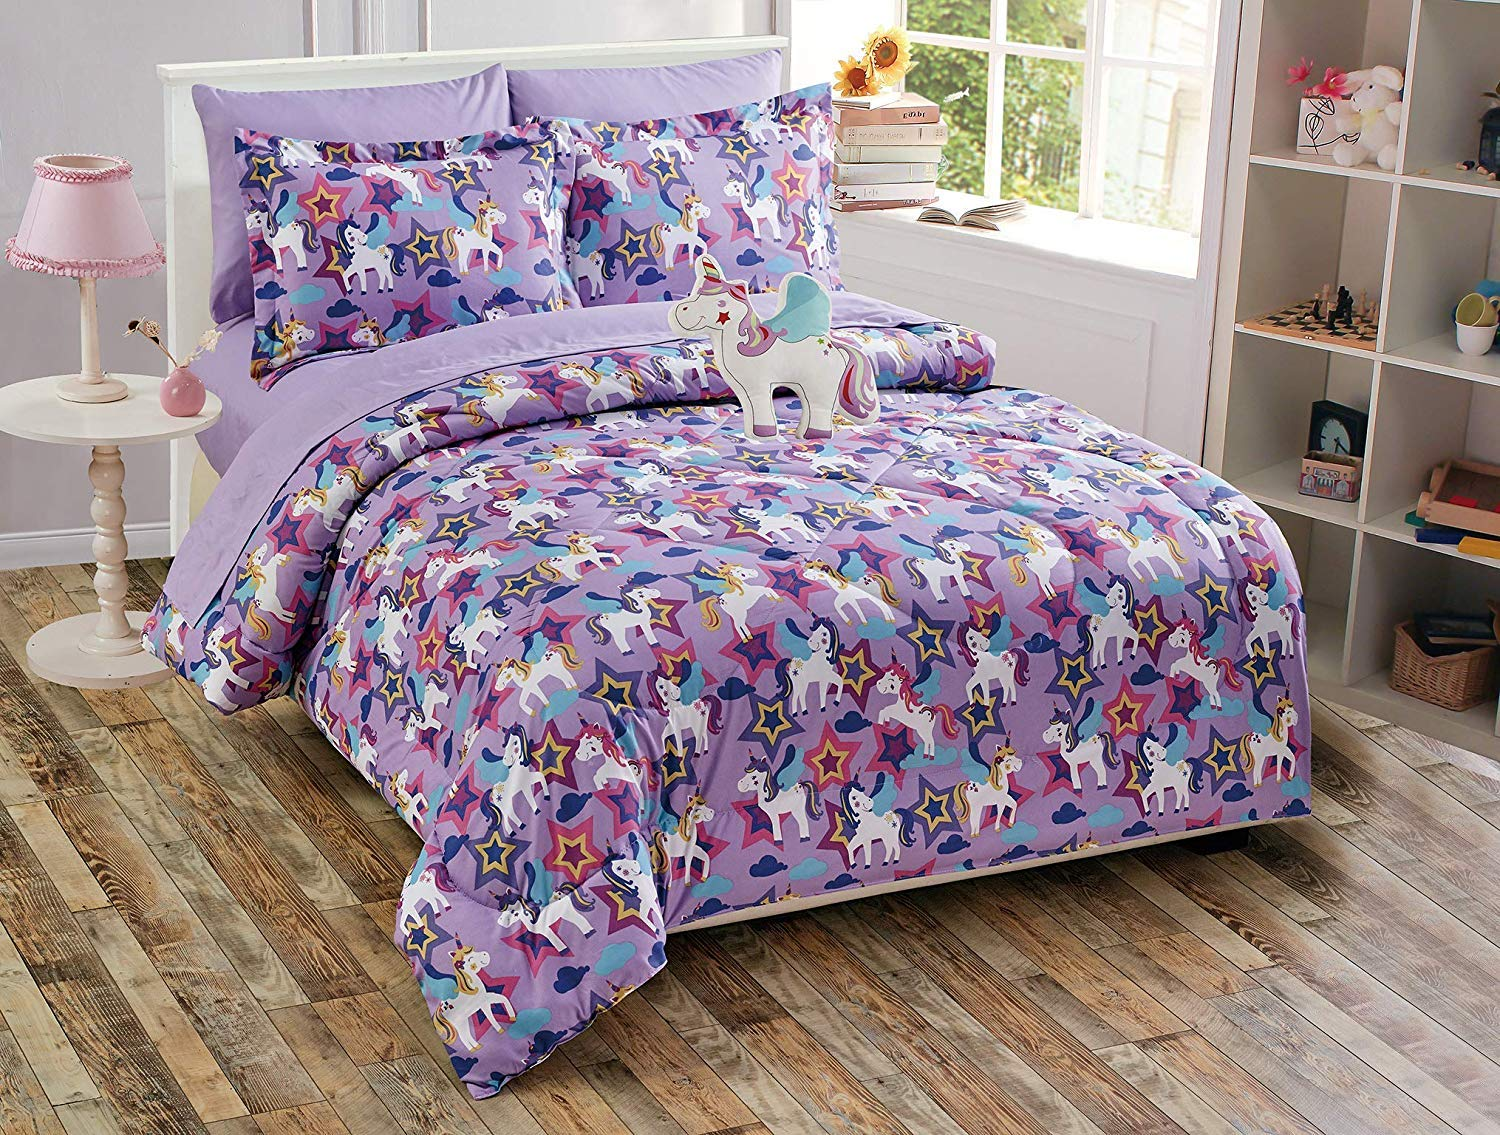 Little Girls Queen Size Bedding Sets.Elegant Homes Multicolor Purple Unicorn Little Pony Design Fun 8 Piece Queen Size Comforter Bedding Set For Girls Kids Teens Bed In A Bag With Sheet